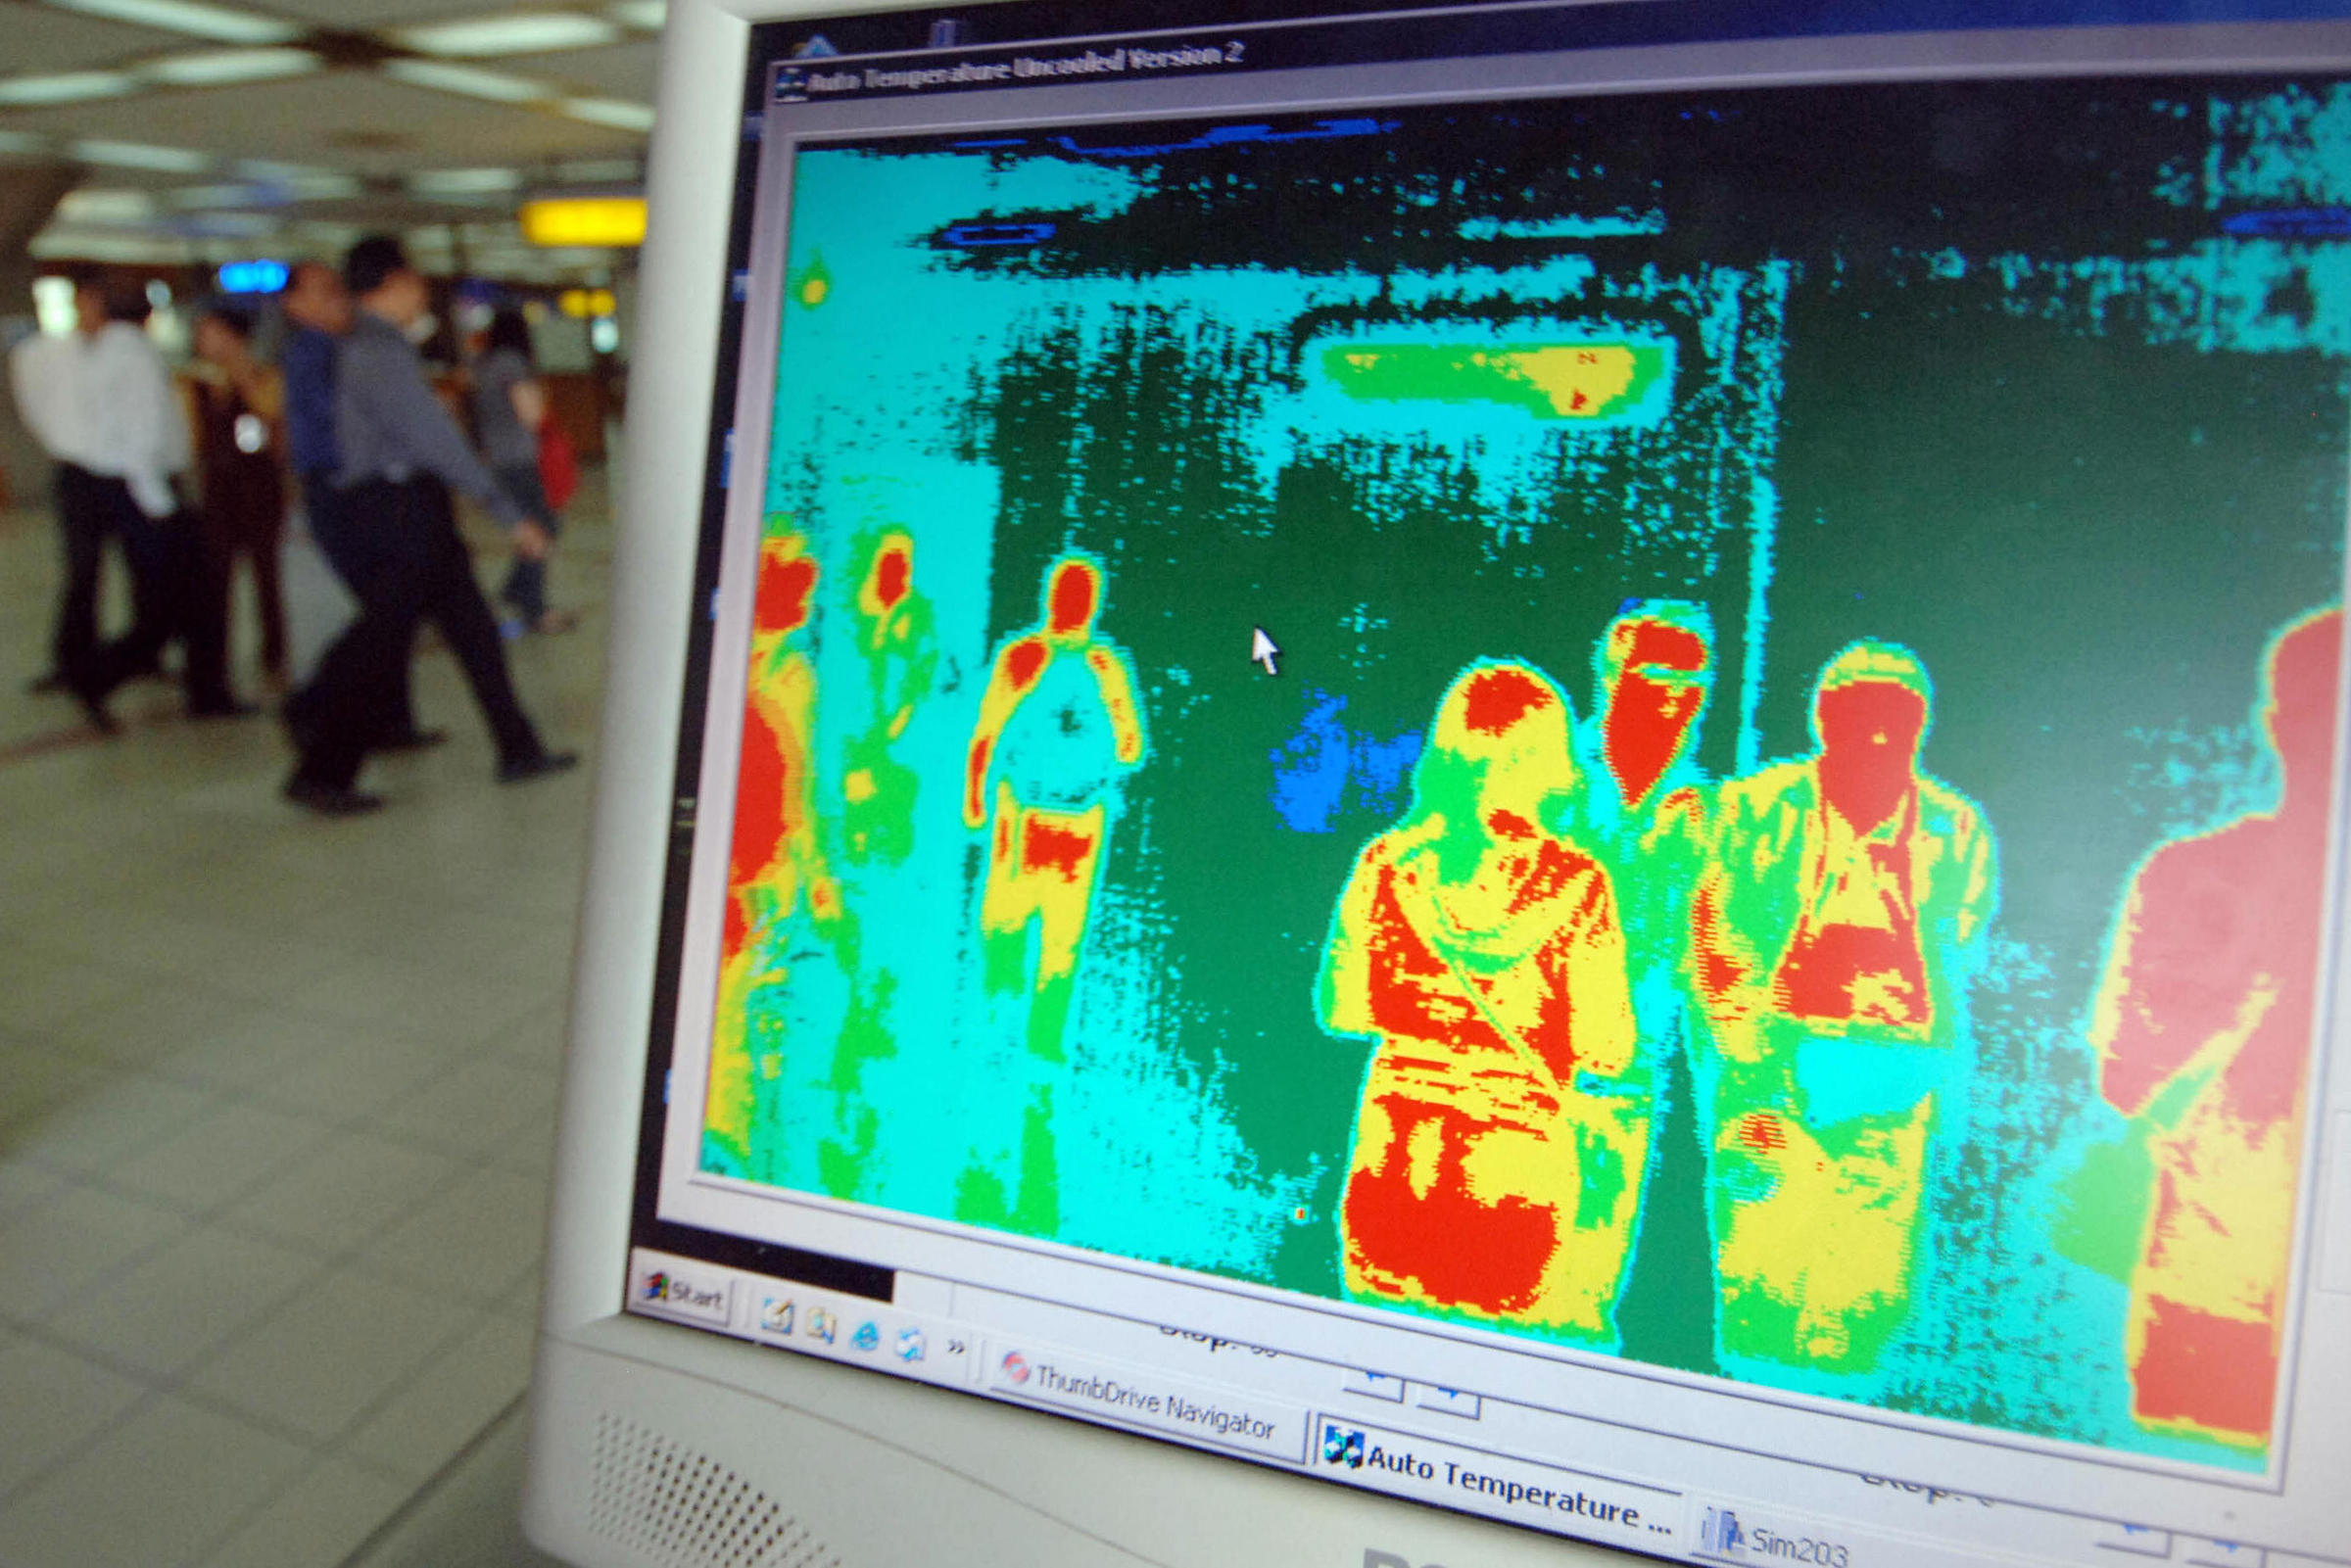 Canary airports to get thermal imaging cameras to test passengers for coronavirus fever  282530743